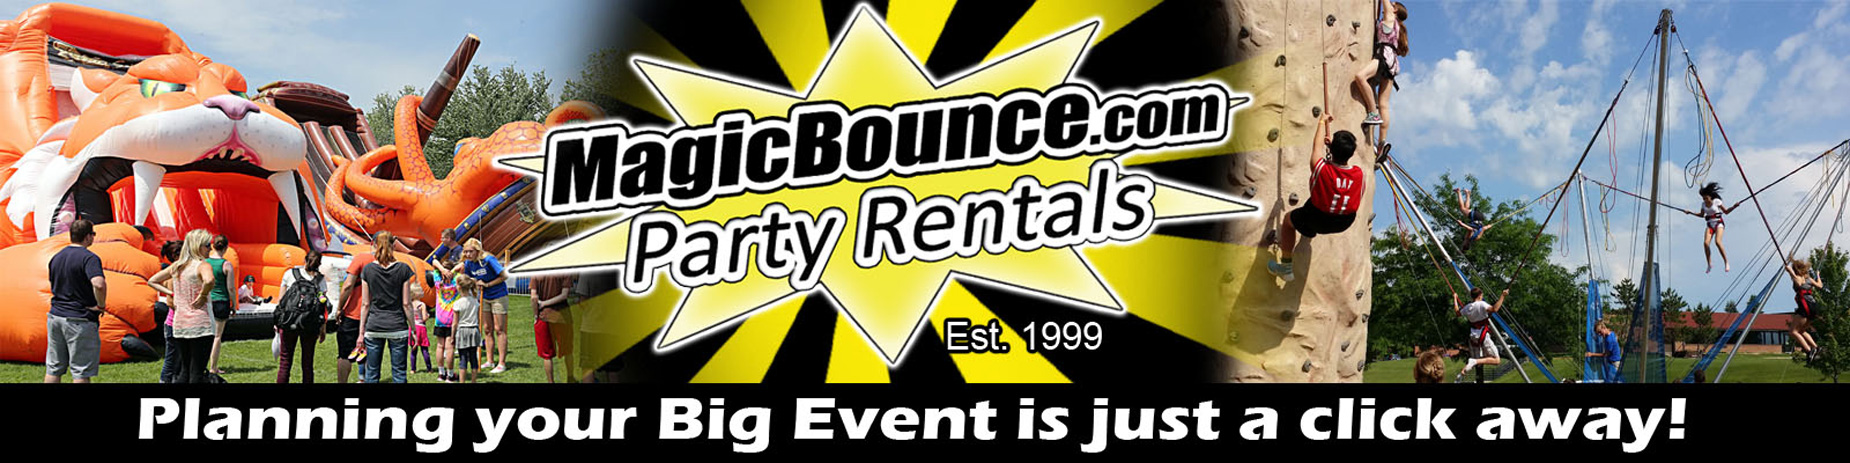 Magic Bounce Party Rentals -Minnesota, Wisconsin, Iowa